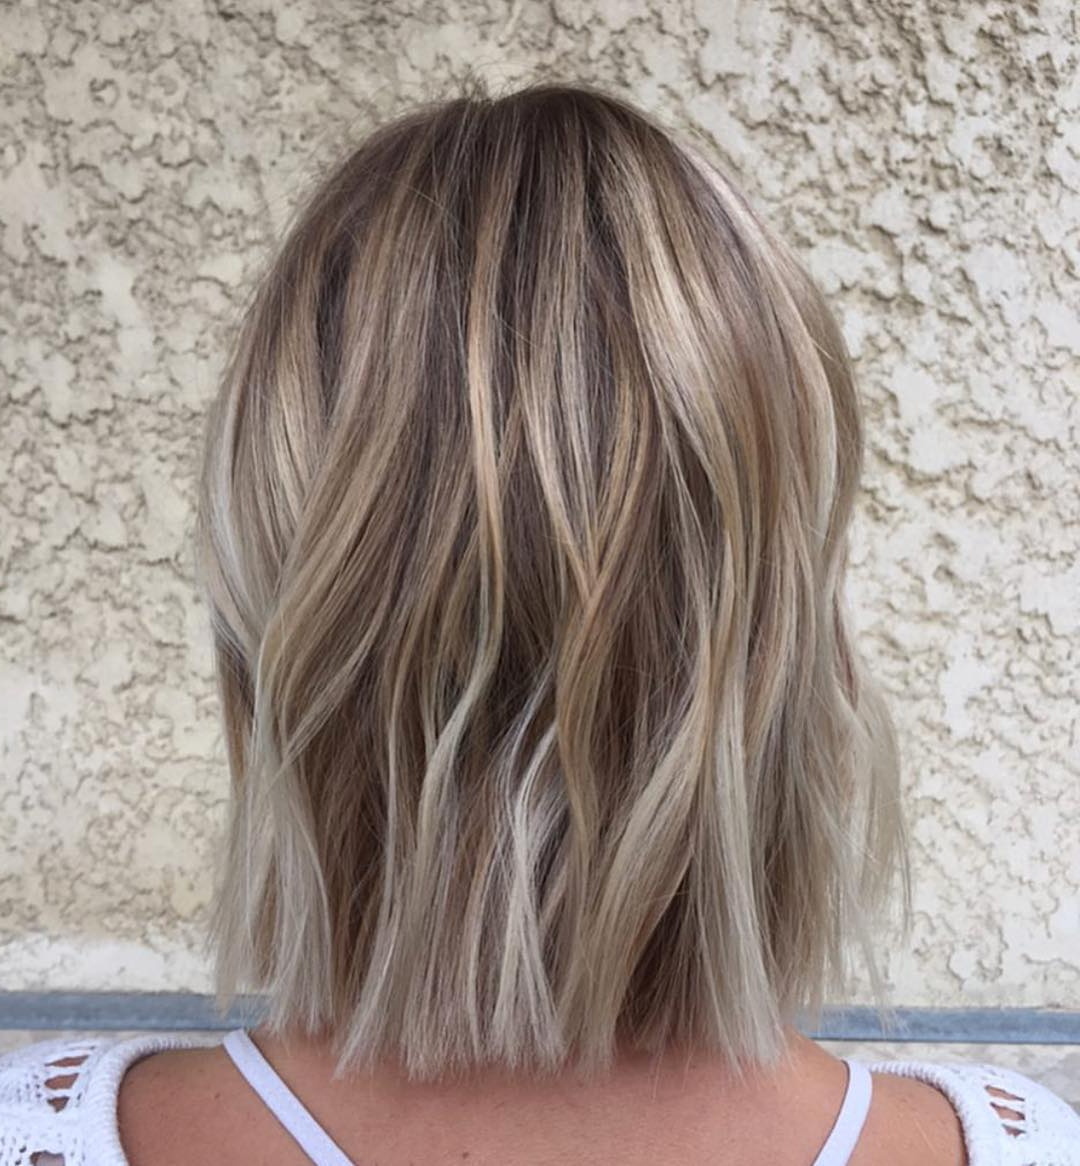 Most Recently Released One Length Medium Haircuts In 10 Balayage Ombre Hair Styles For Shoulder Length Hair, Women (View 5 of 20)